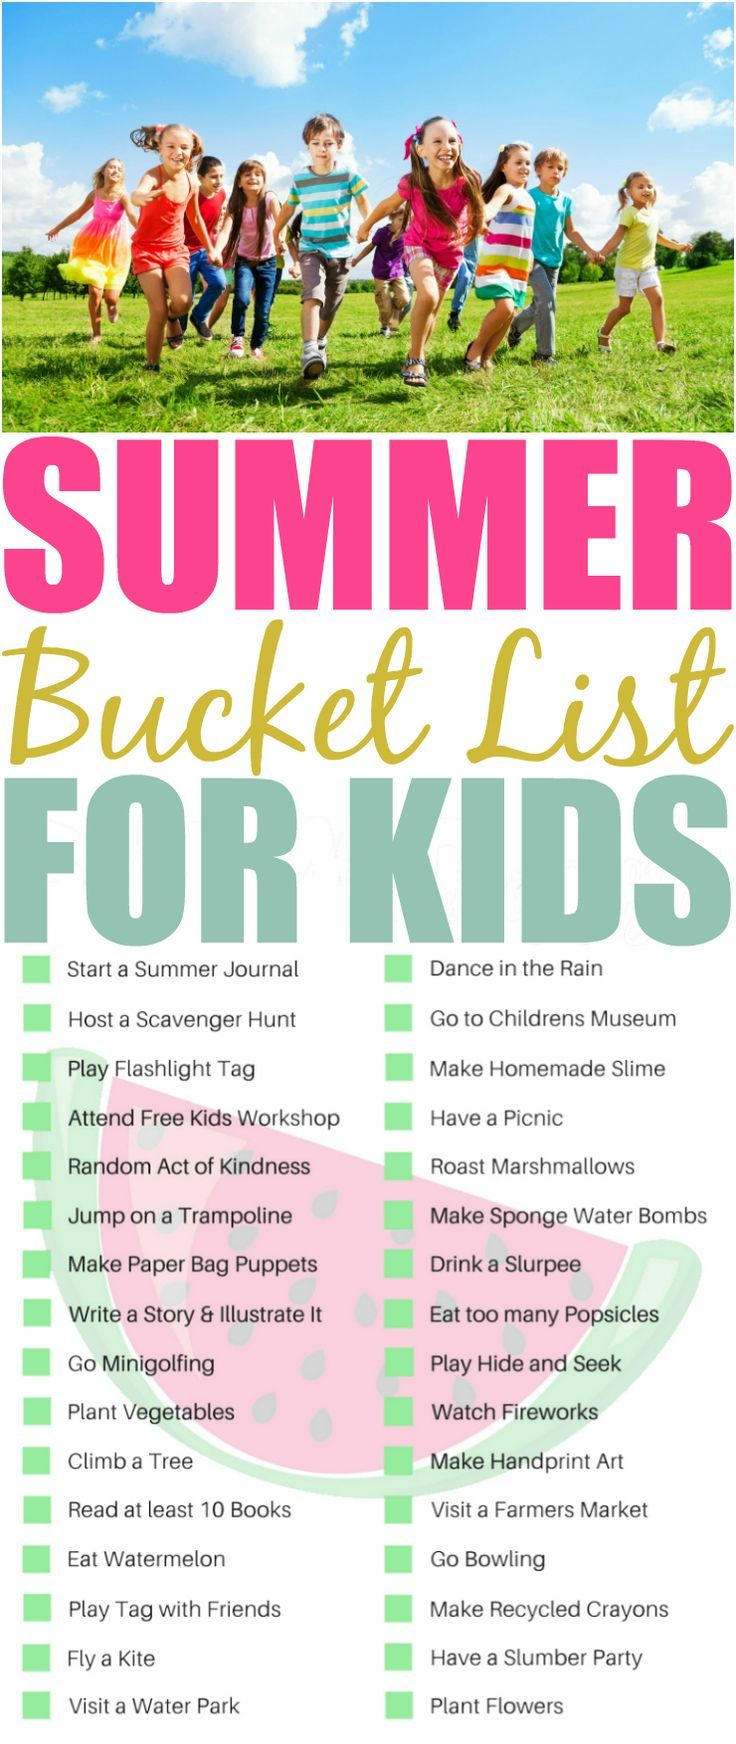 Download this FREE printable kids summer bucket list now! With 32 ideas they will have fun like we did when we were kids, not glued to electronics all day.